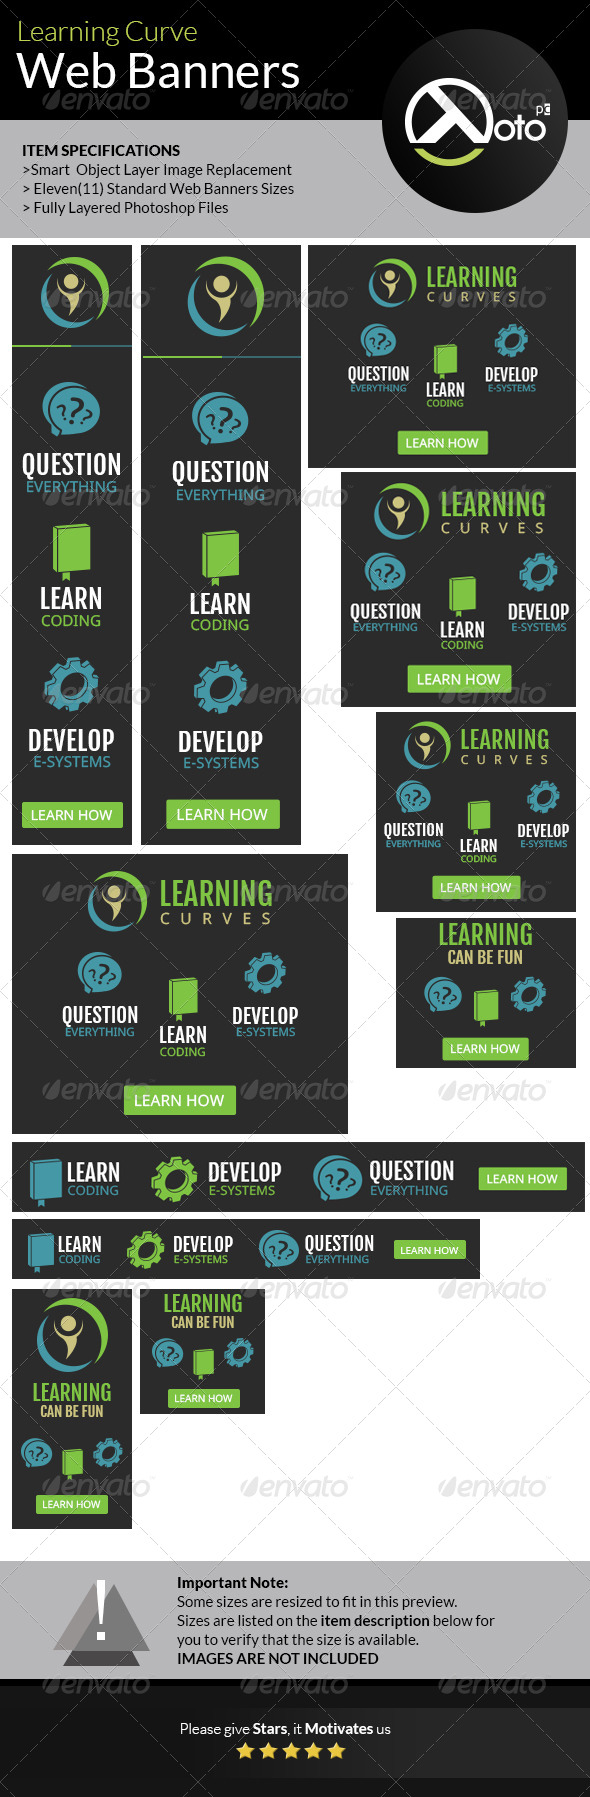 GraphicRiver Learning Curve Online Course Web Banners 7488242